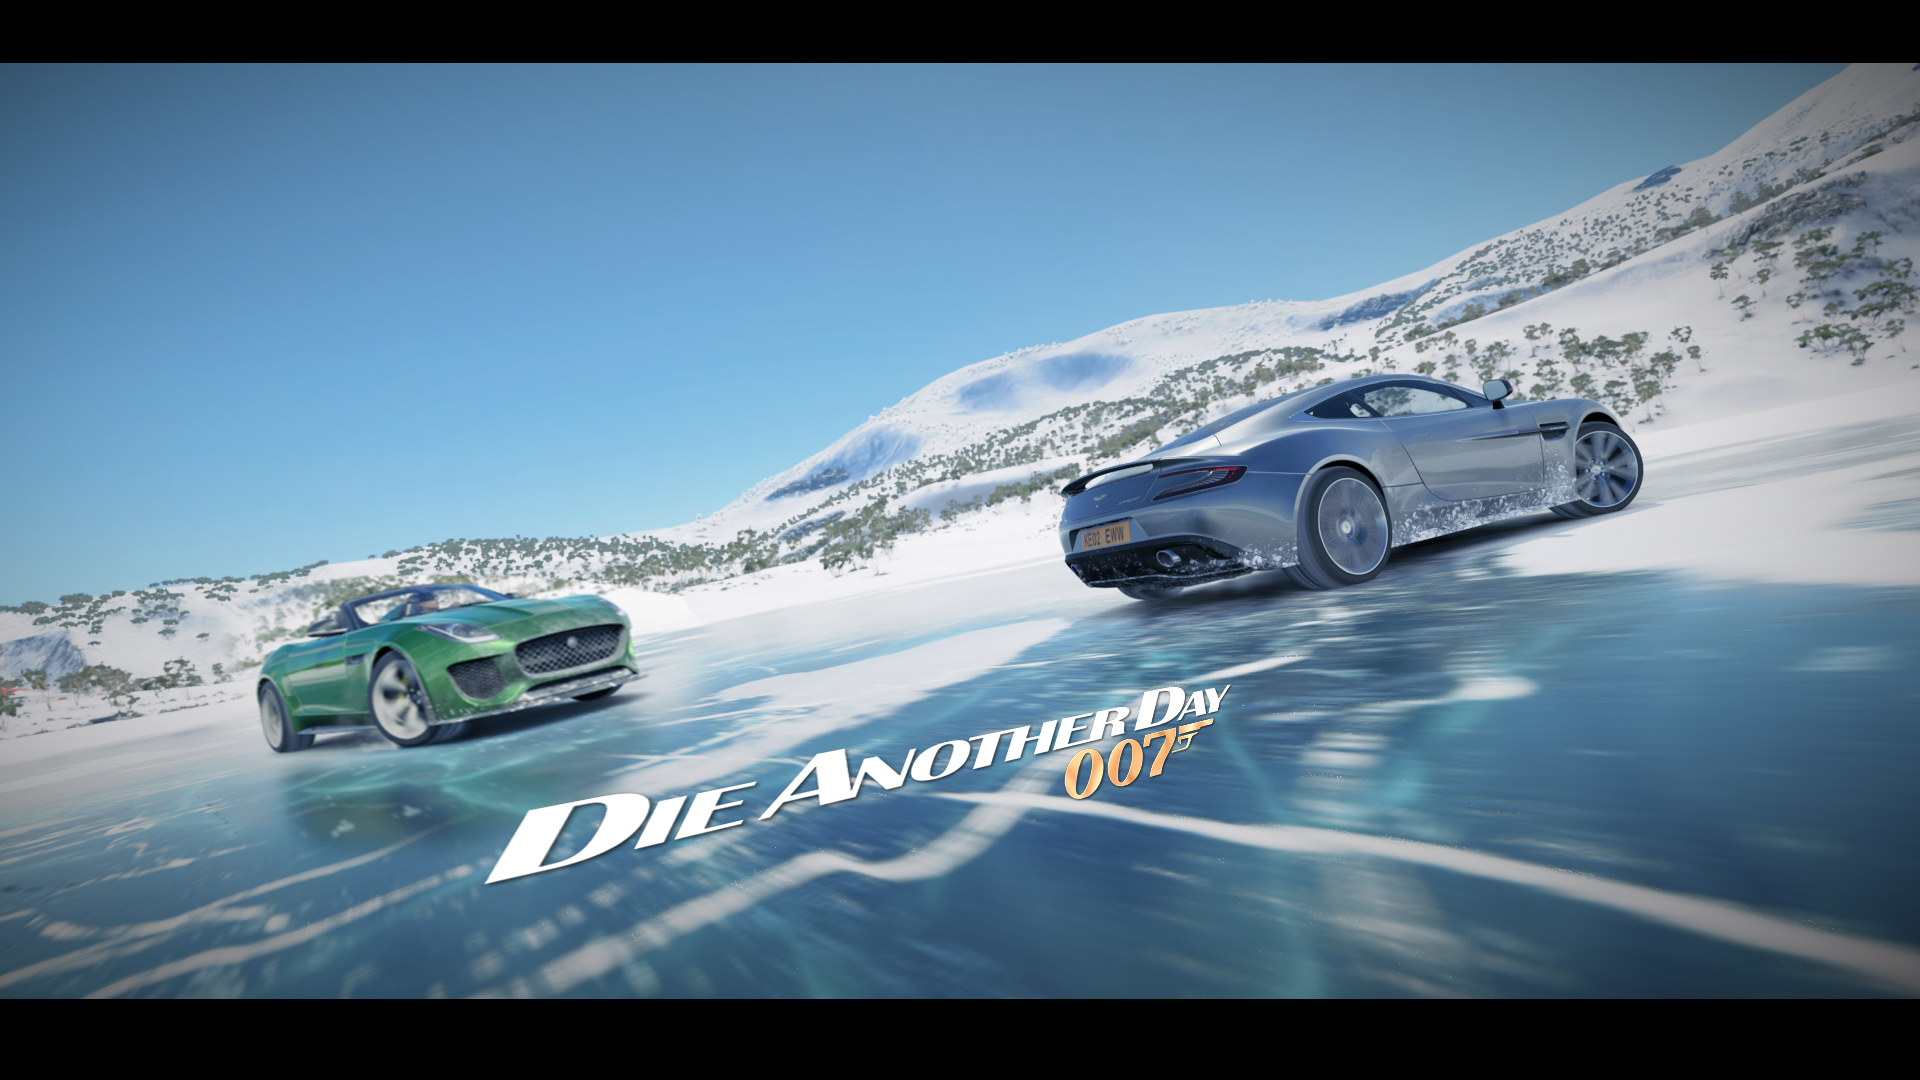 Forza%20Horizon%203%20Die%20Another%20Day